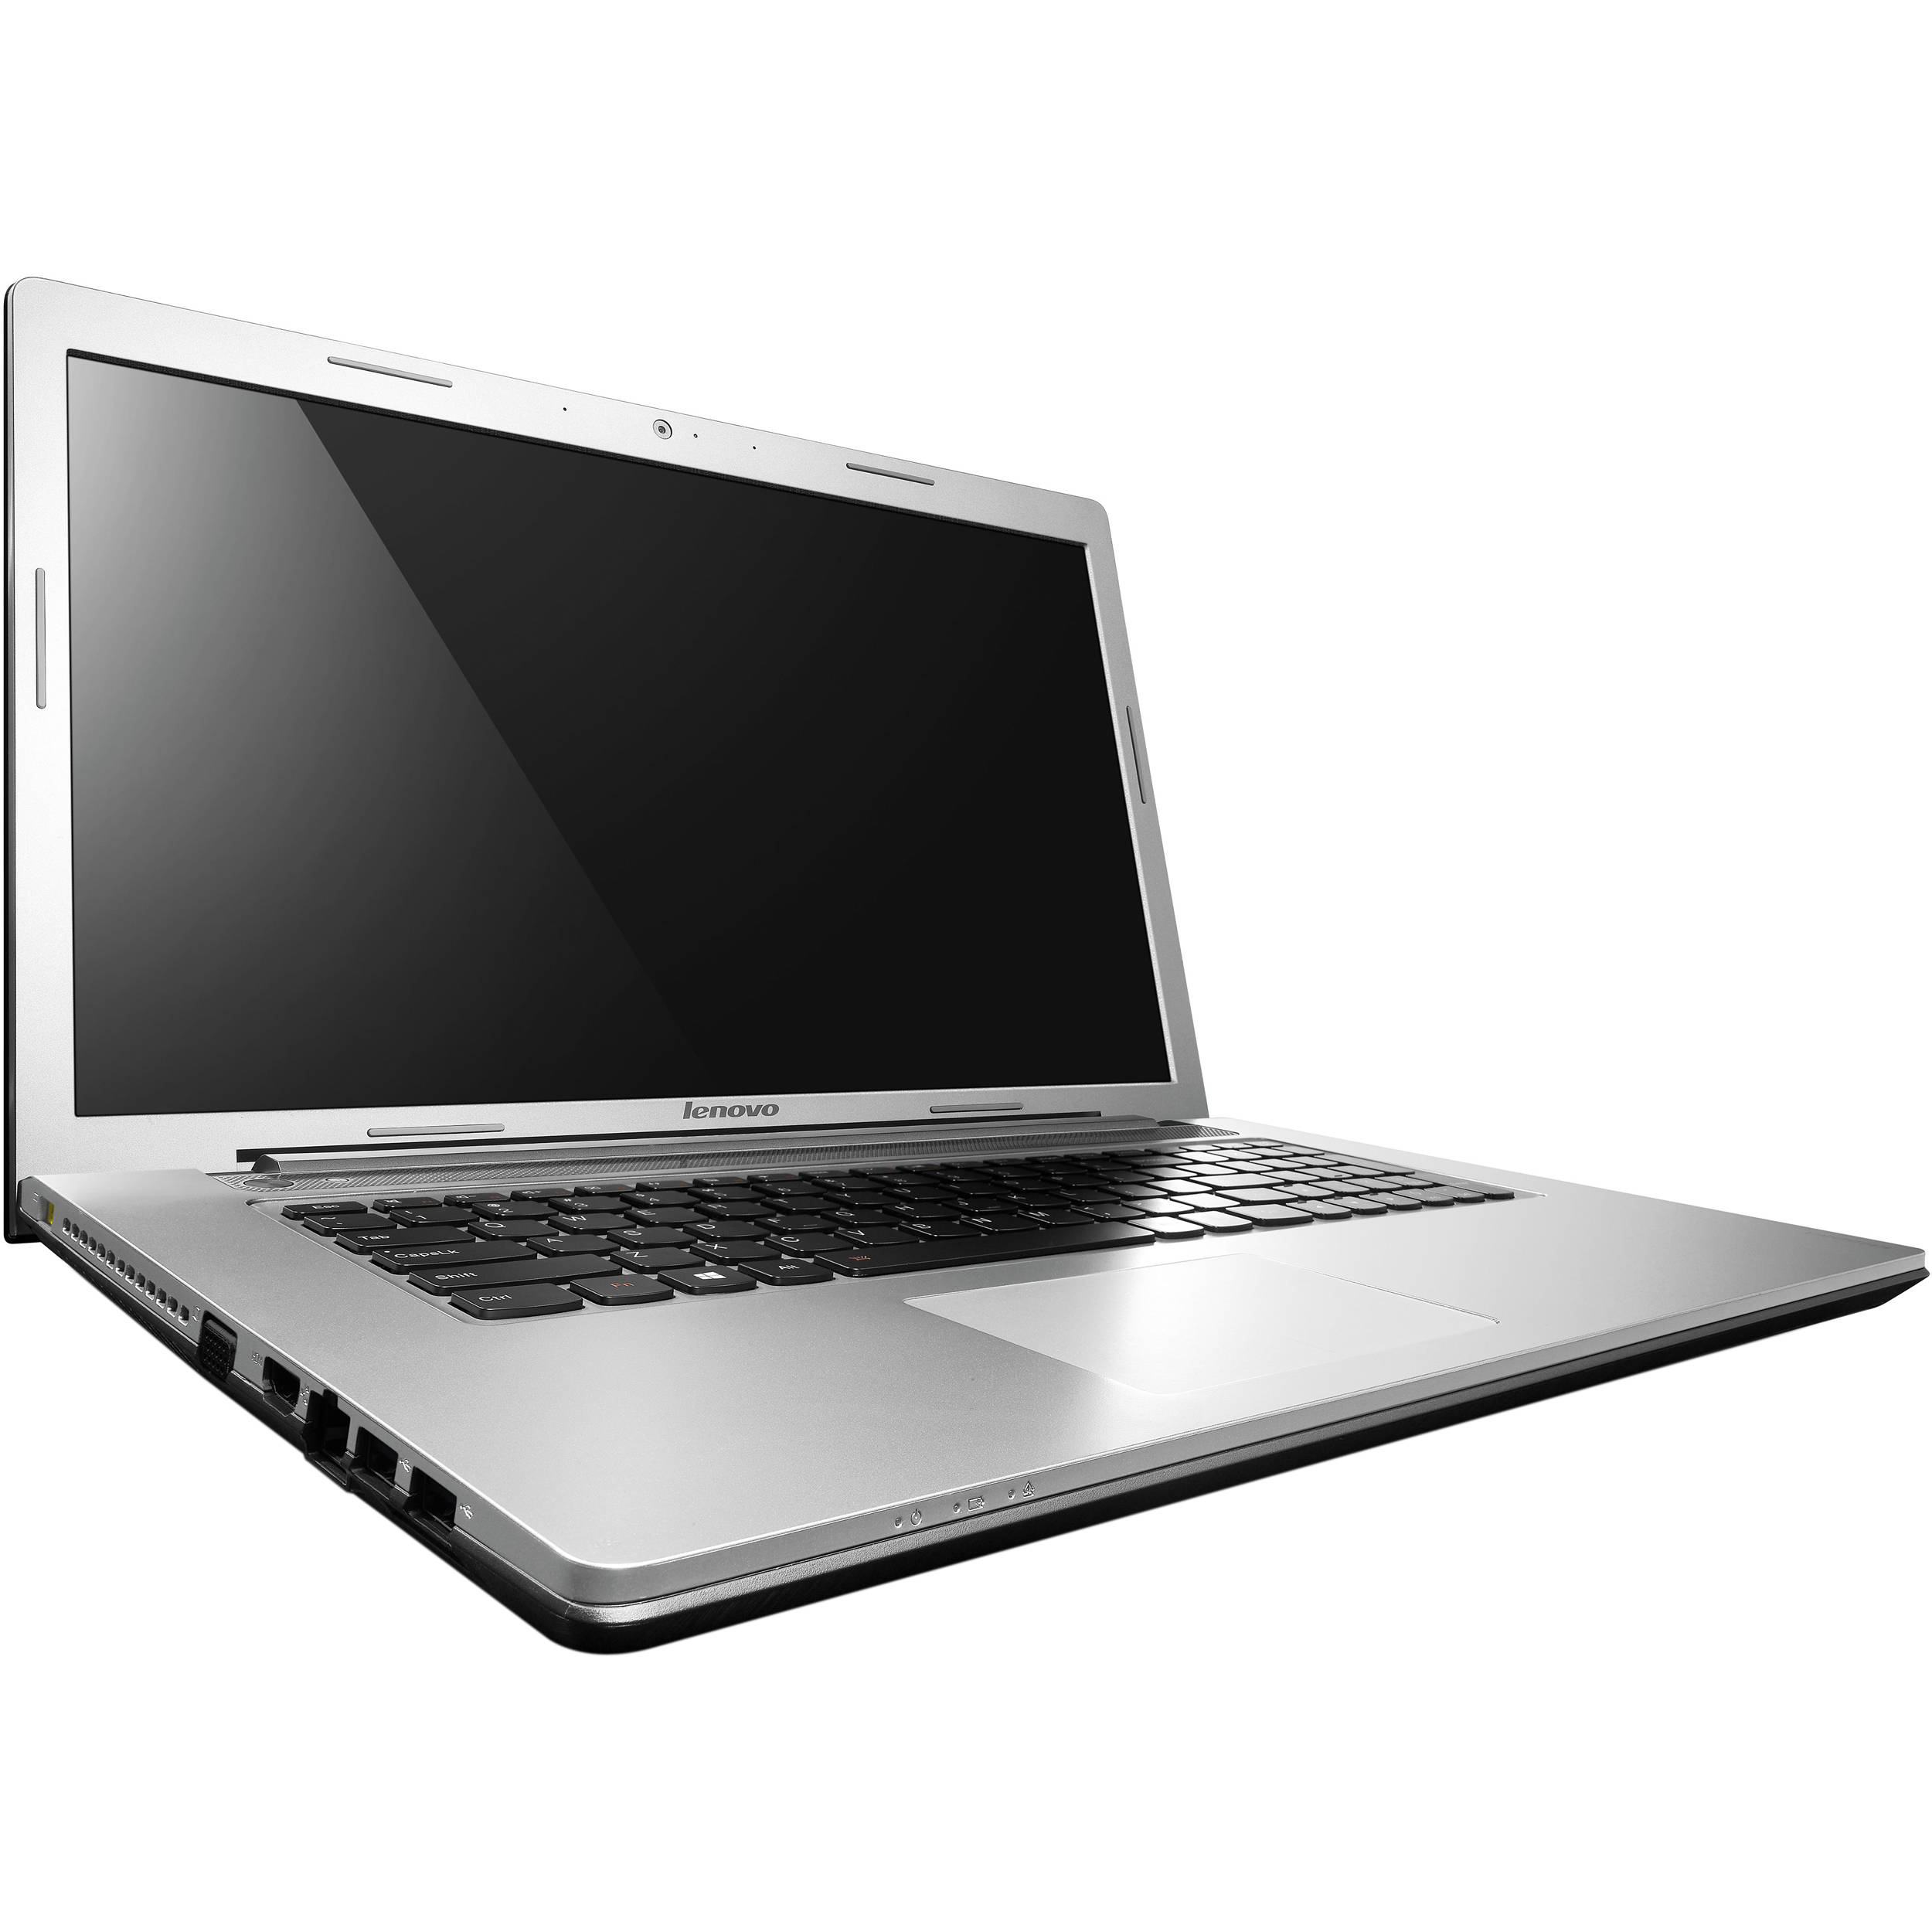 Download Drivers: Lenovo IdeaPad Z710 Bison Camera